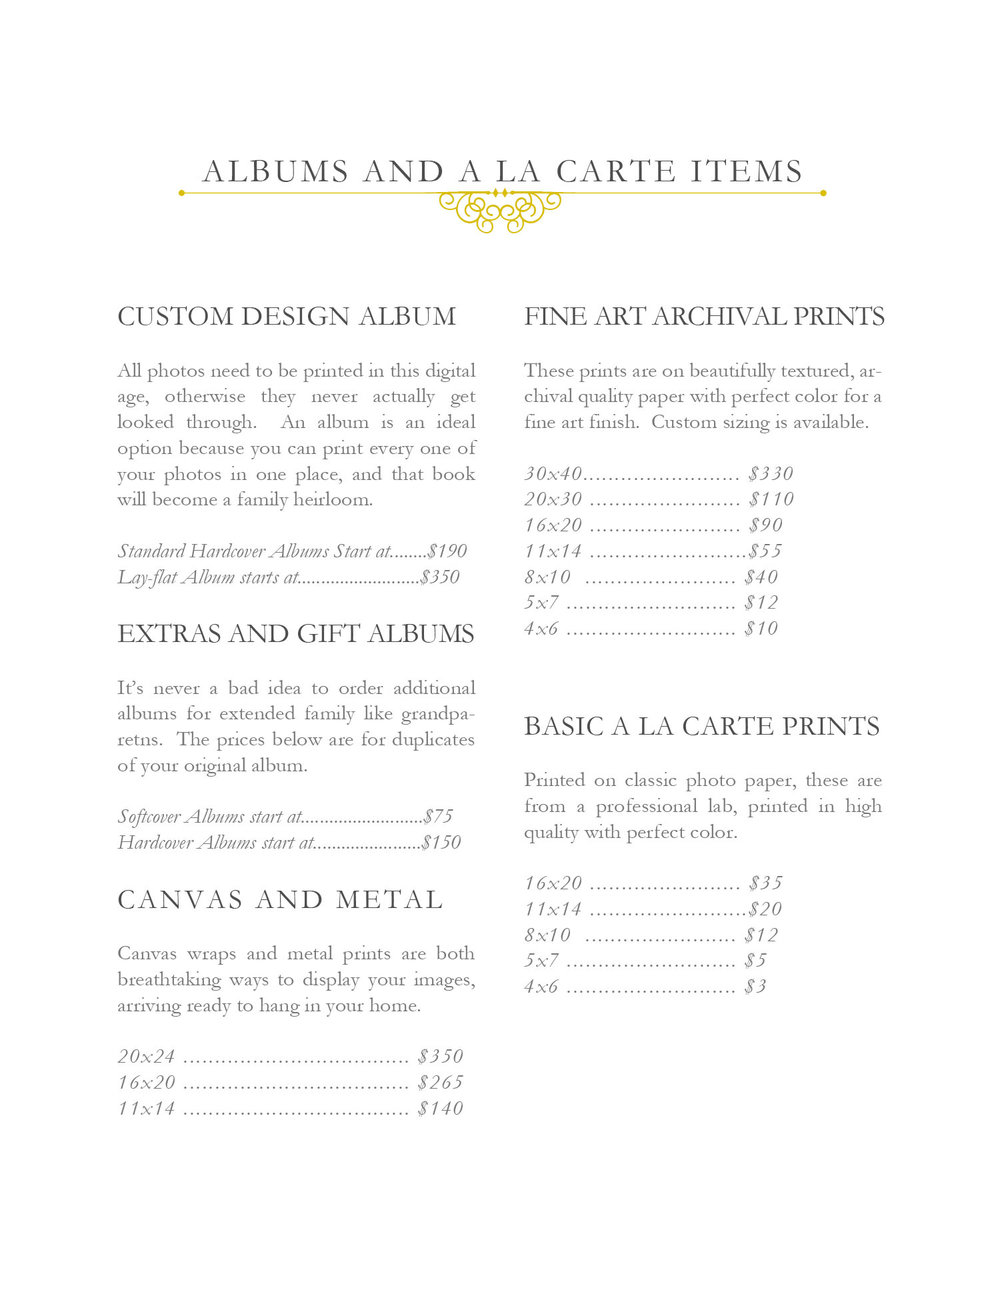 JENNIE GUENARD PHOTOGRAPHY PRODUCT PRICE SHEET